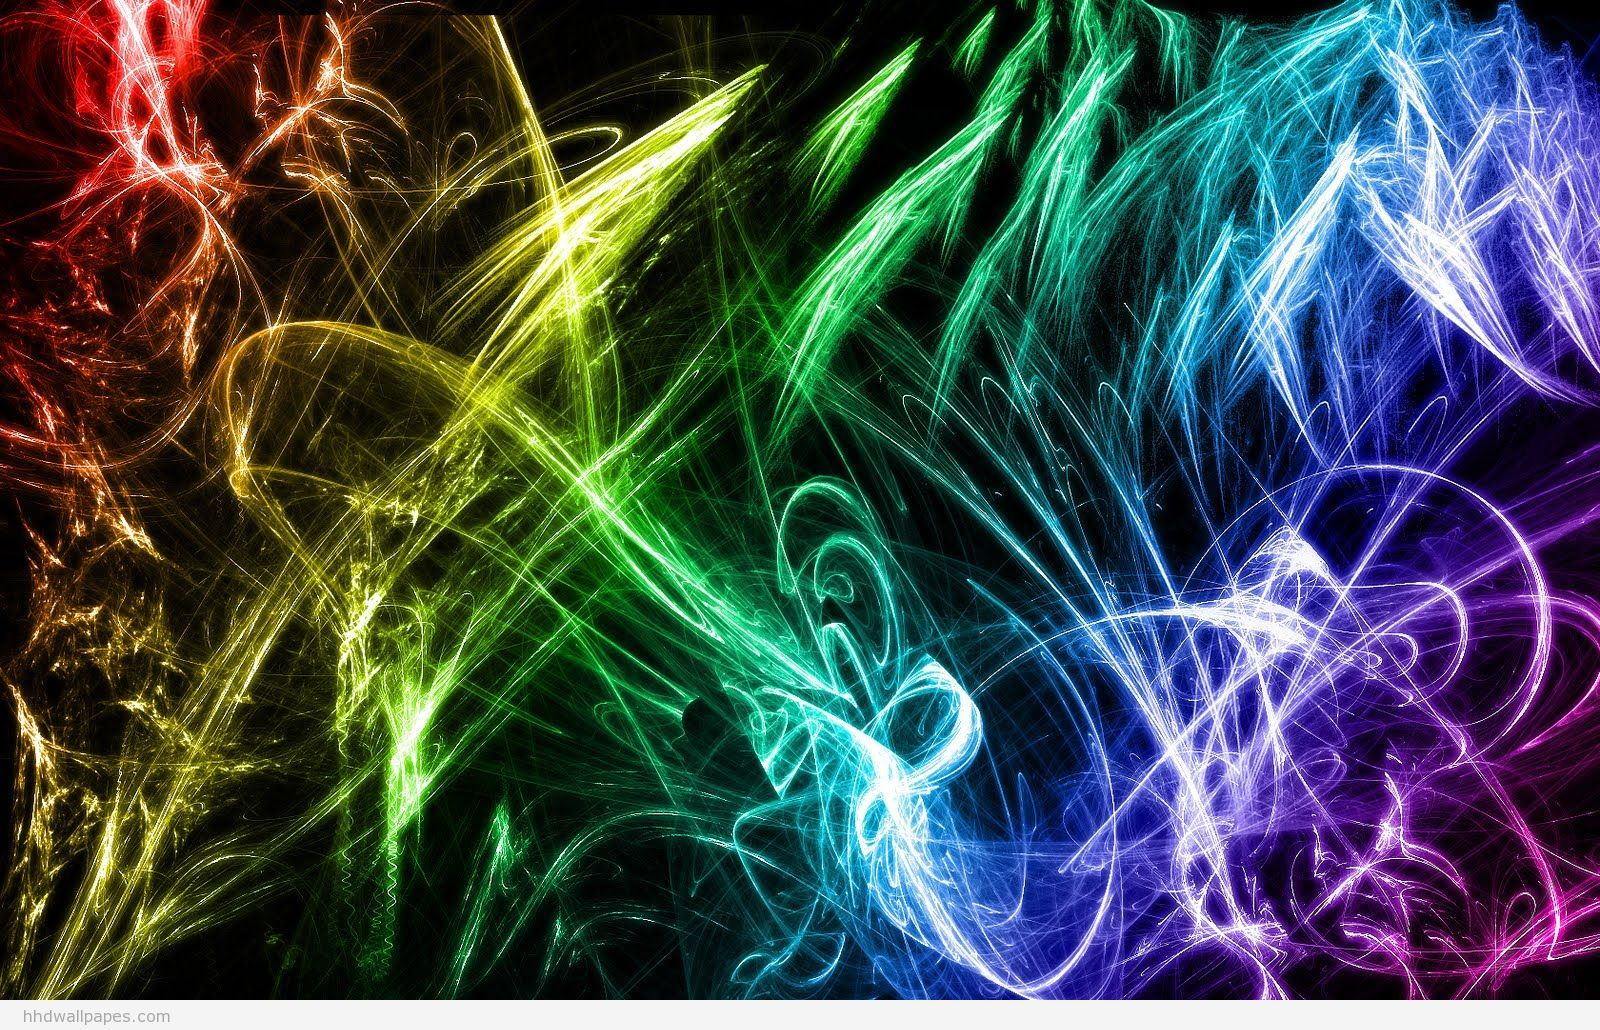 Hd Awesome Pictures Awesome Colorful Abstract Hd Desktop